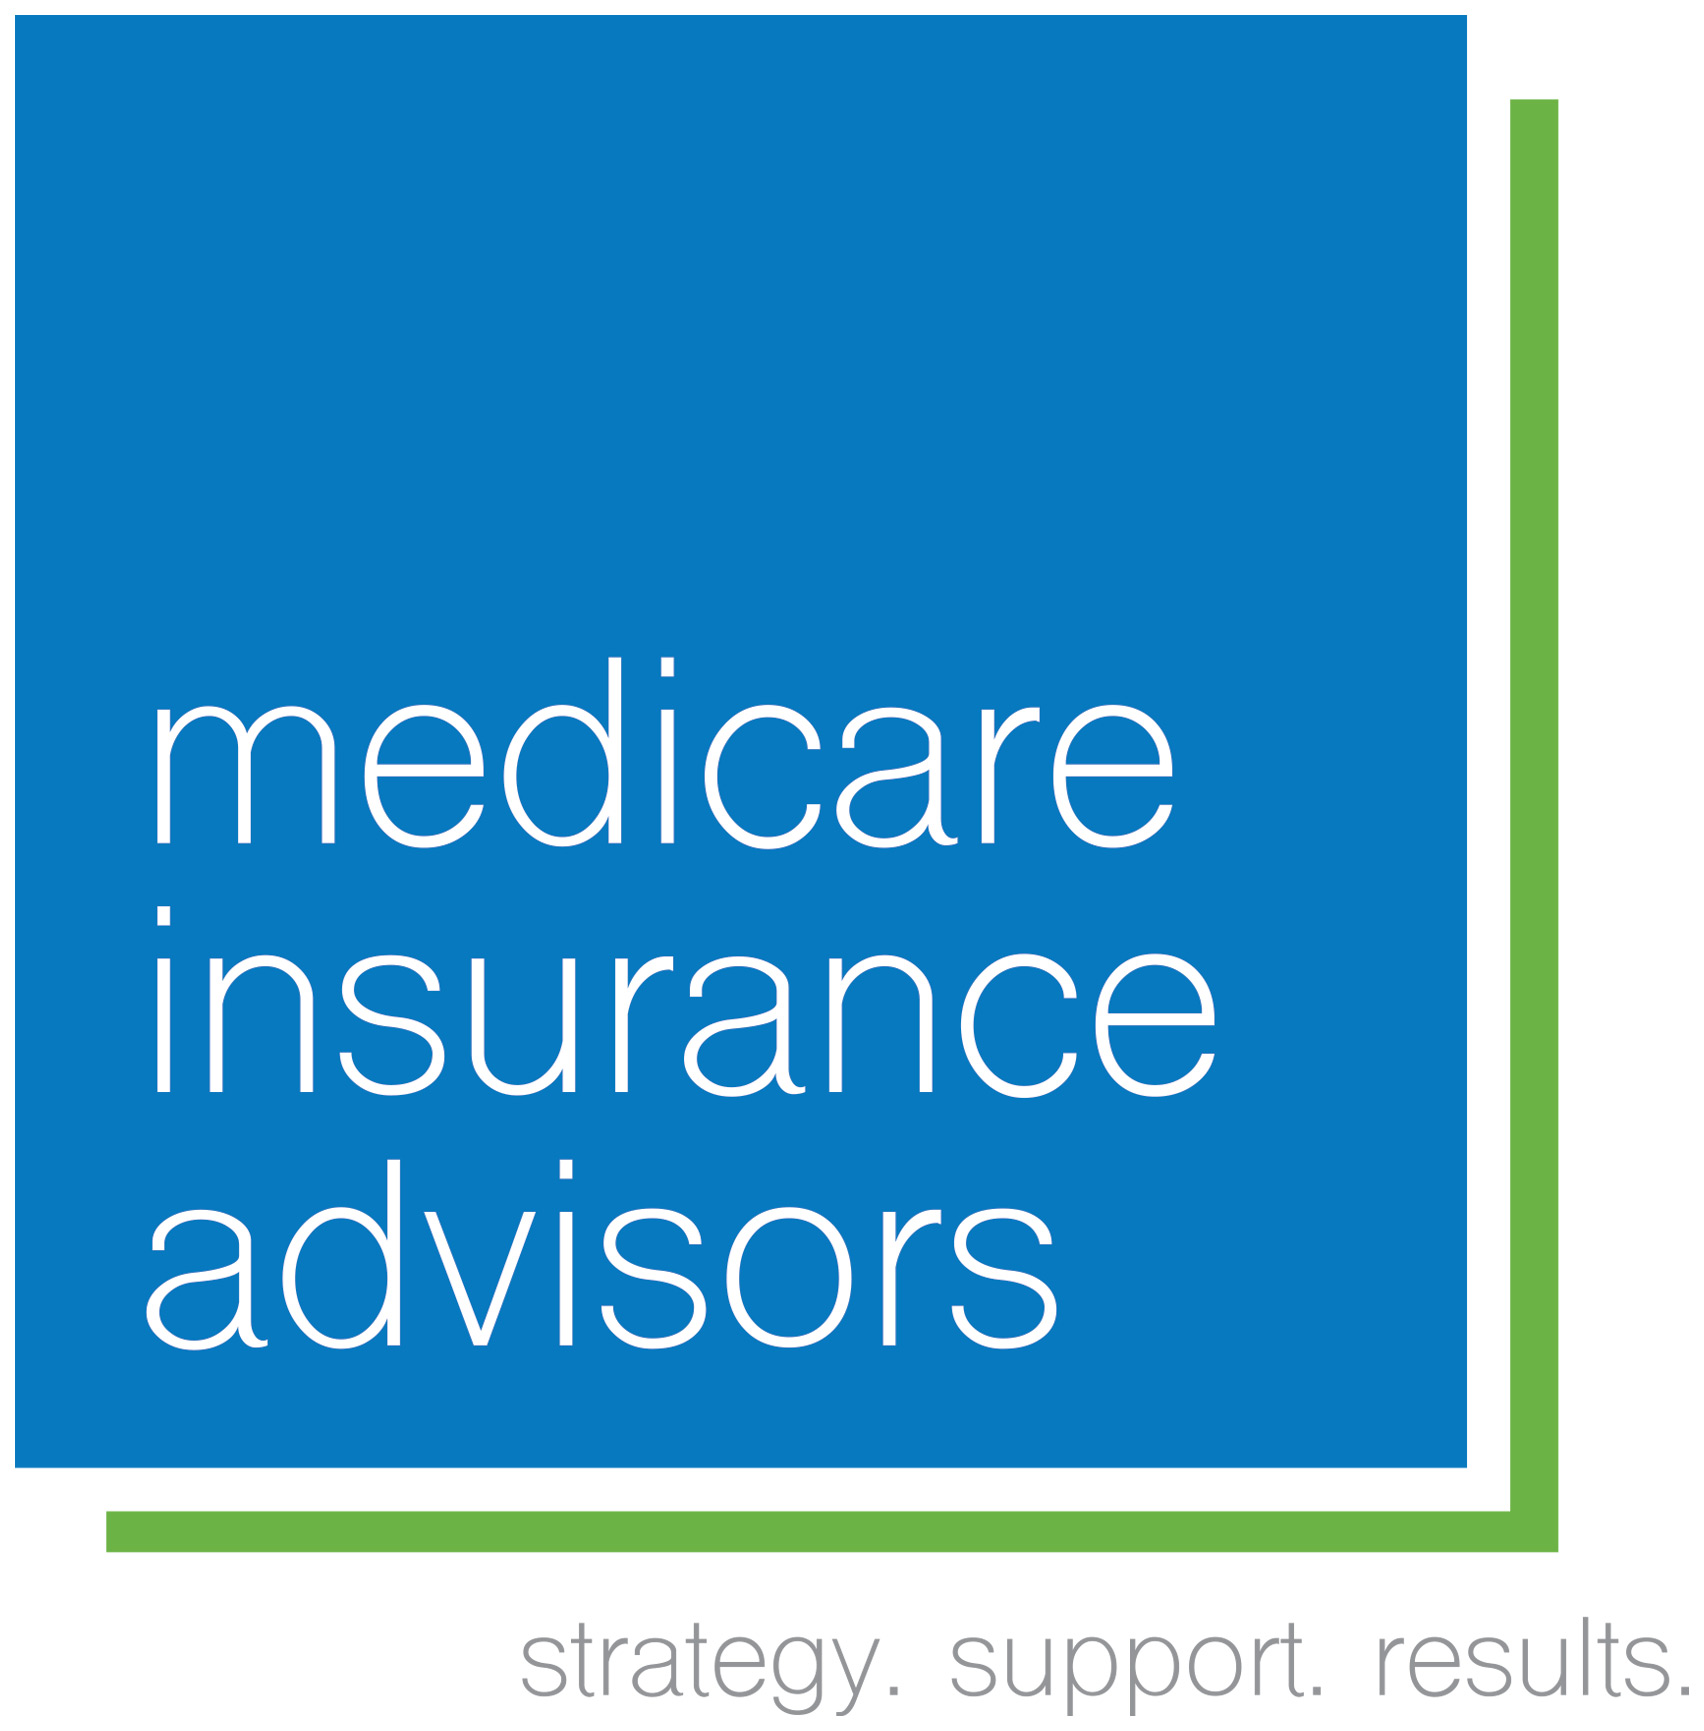 1. Medicare Insurance Advisors (Local Presenting Sponsor)